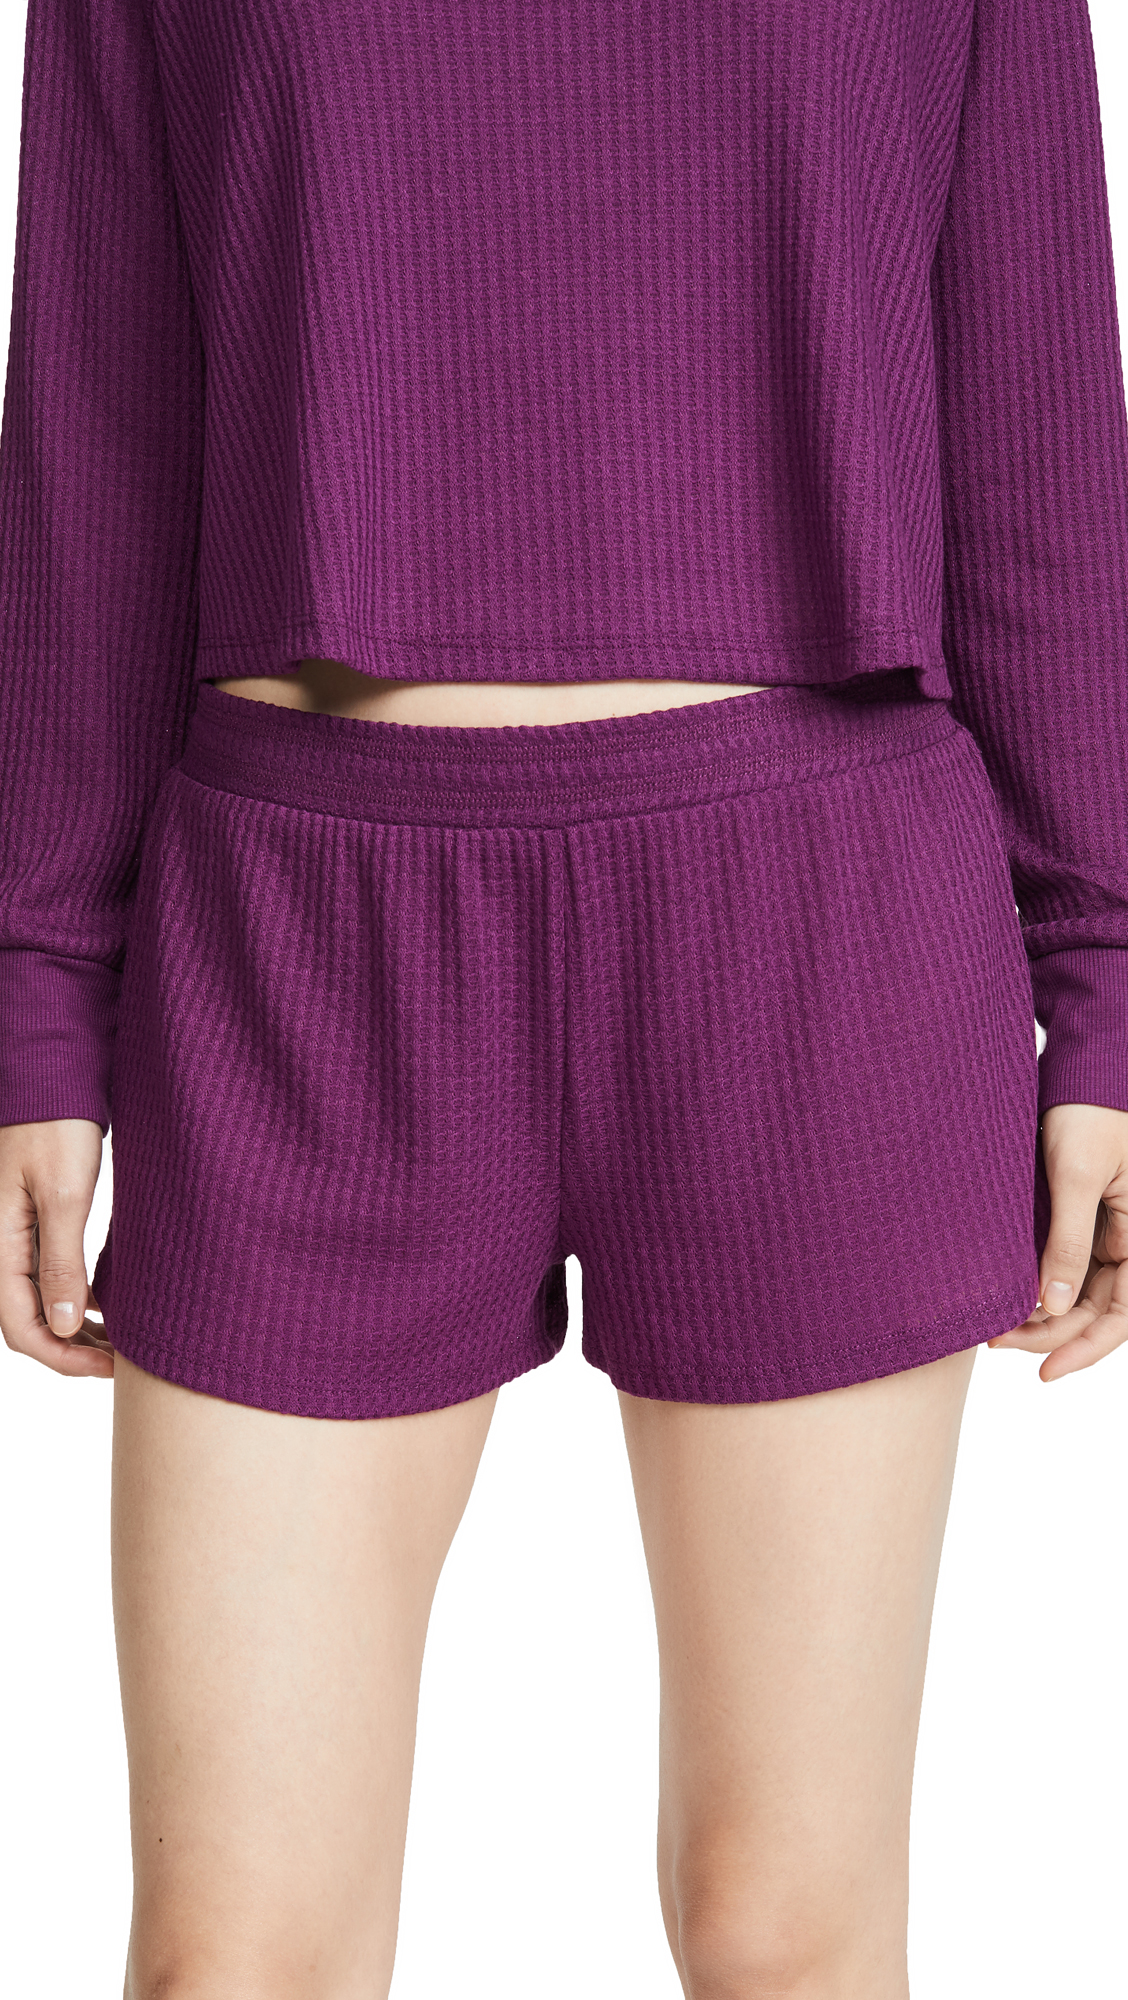 Buy Honeydew Intimates online - photo of Honeydew Intimates Sneak Peek Waffle Knit Lounge Shorts